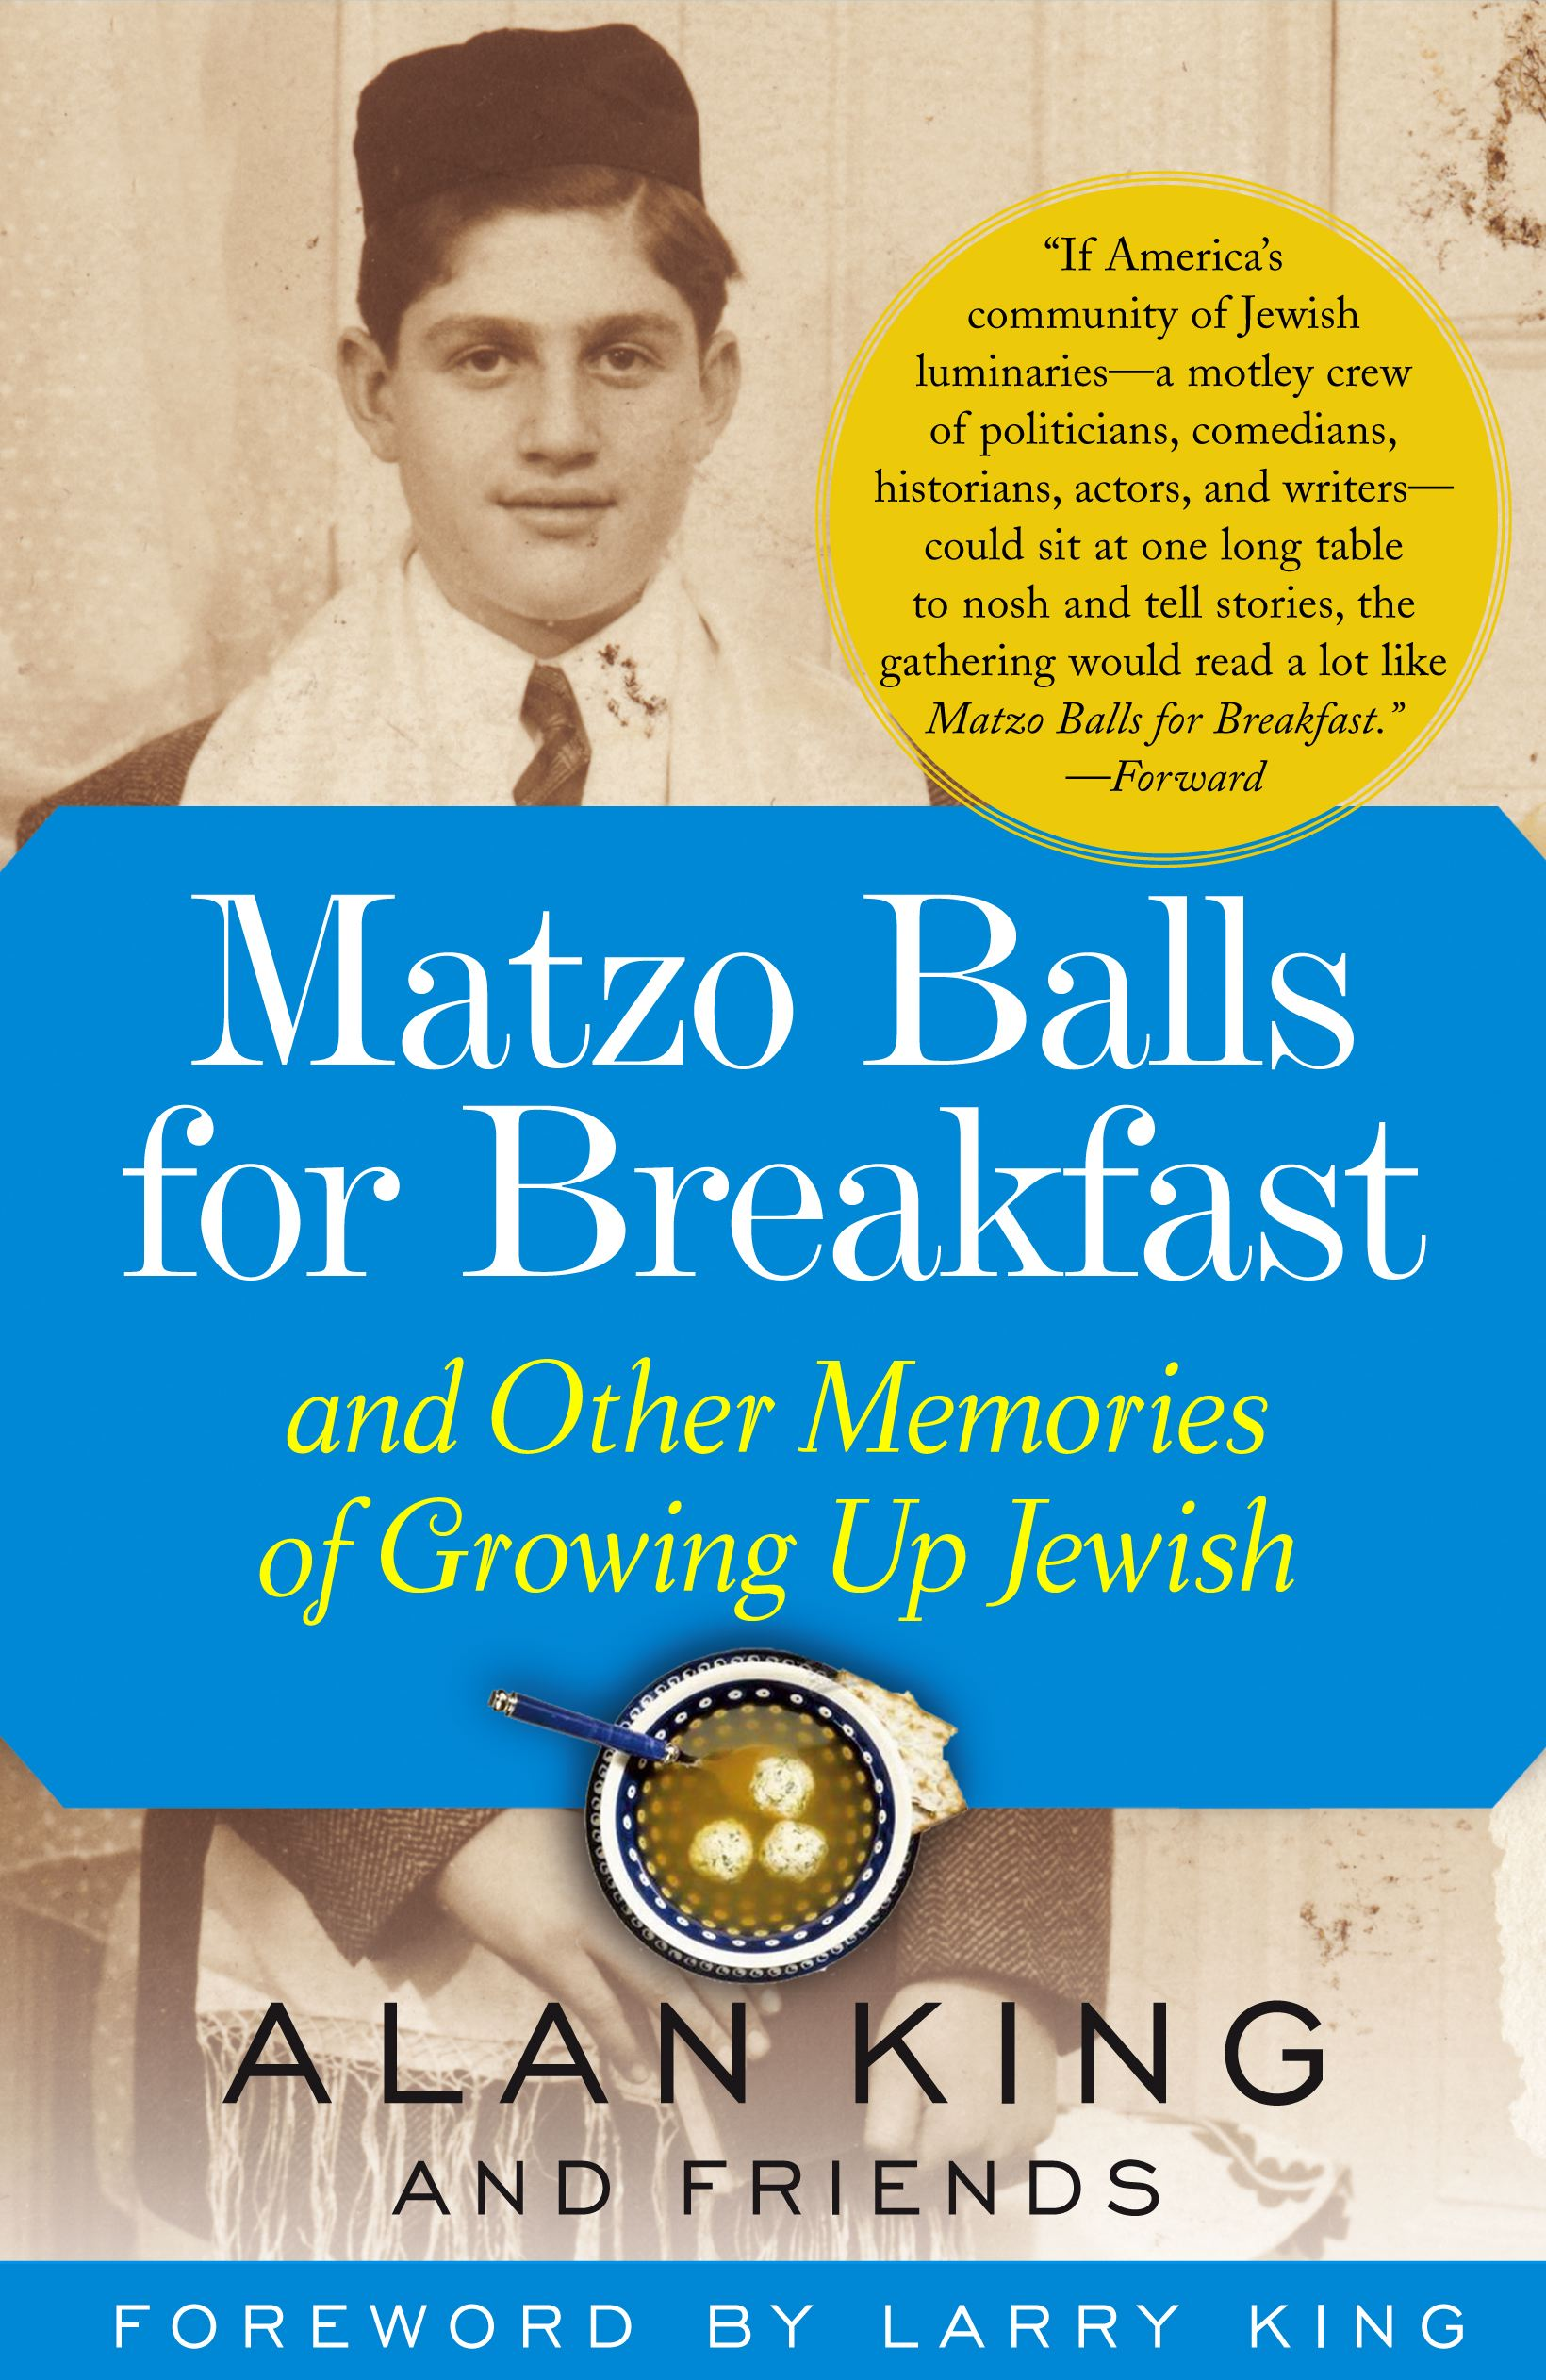 Matzo-balls-for-breakfast-and-other-memories-of-growing-up-jewish-9781416585466_hr